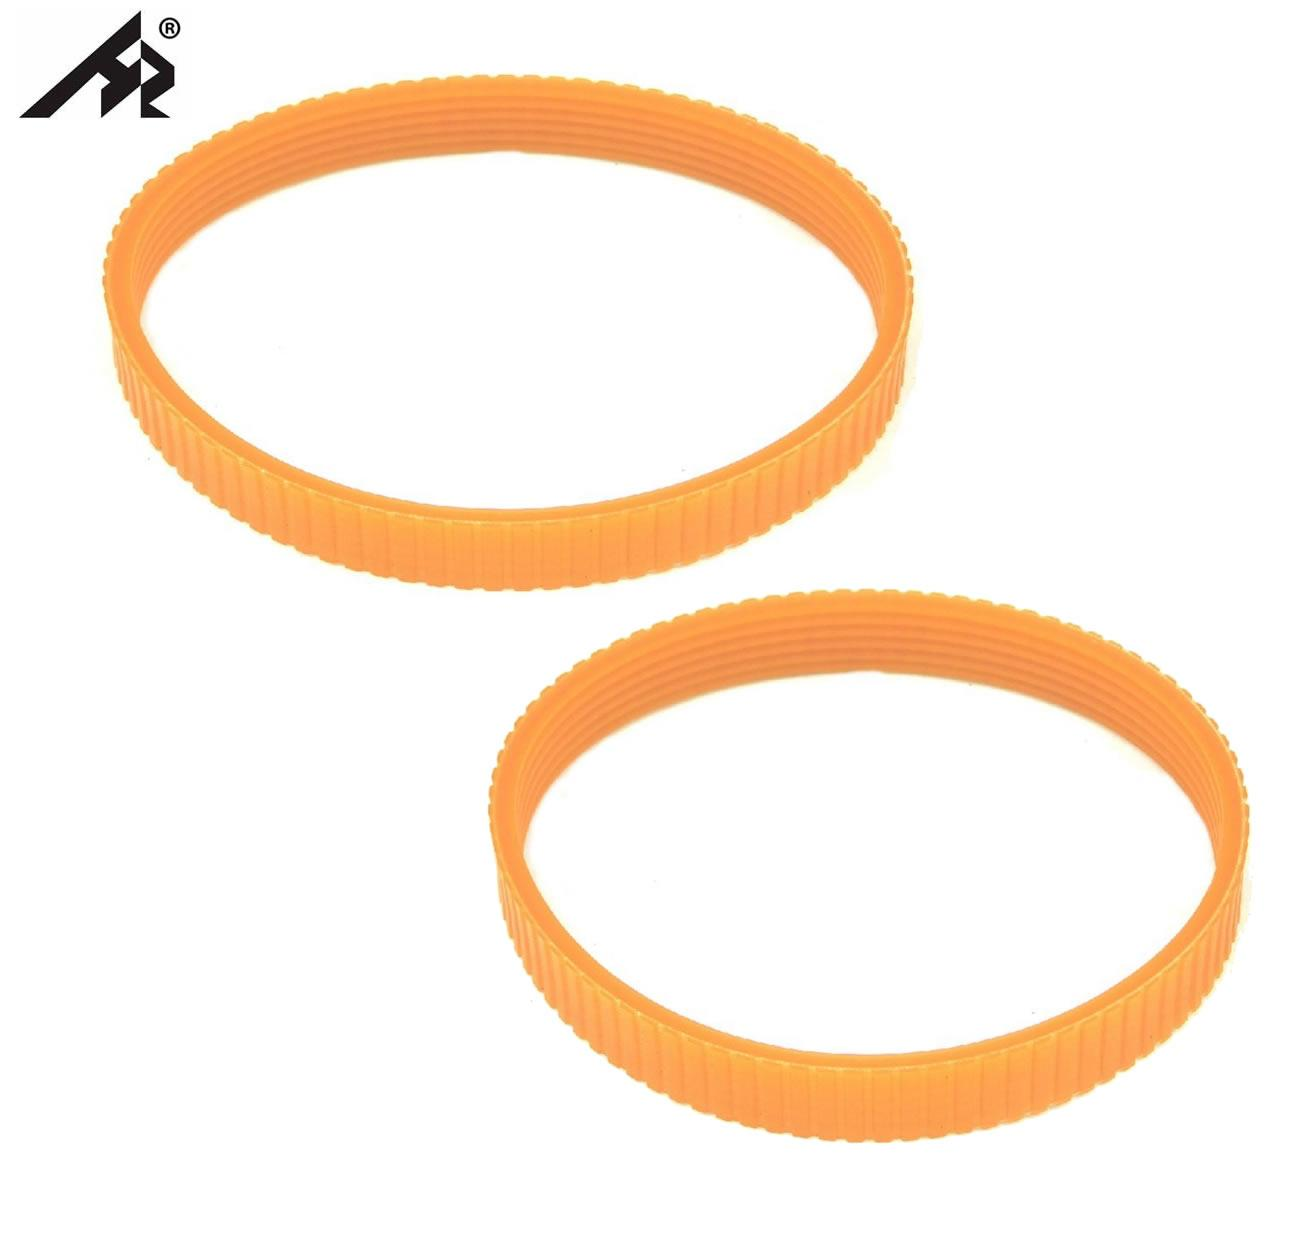 2PCS OEM Replacement Planer Toothed Drive Belt For Dewalt DW734 DW734R 6 Ribs